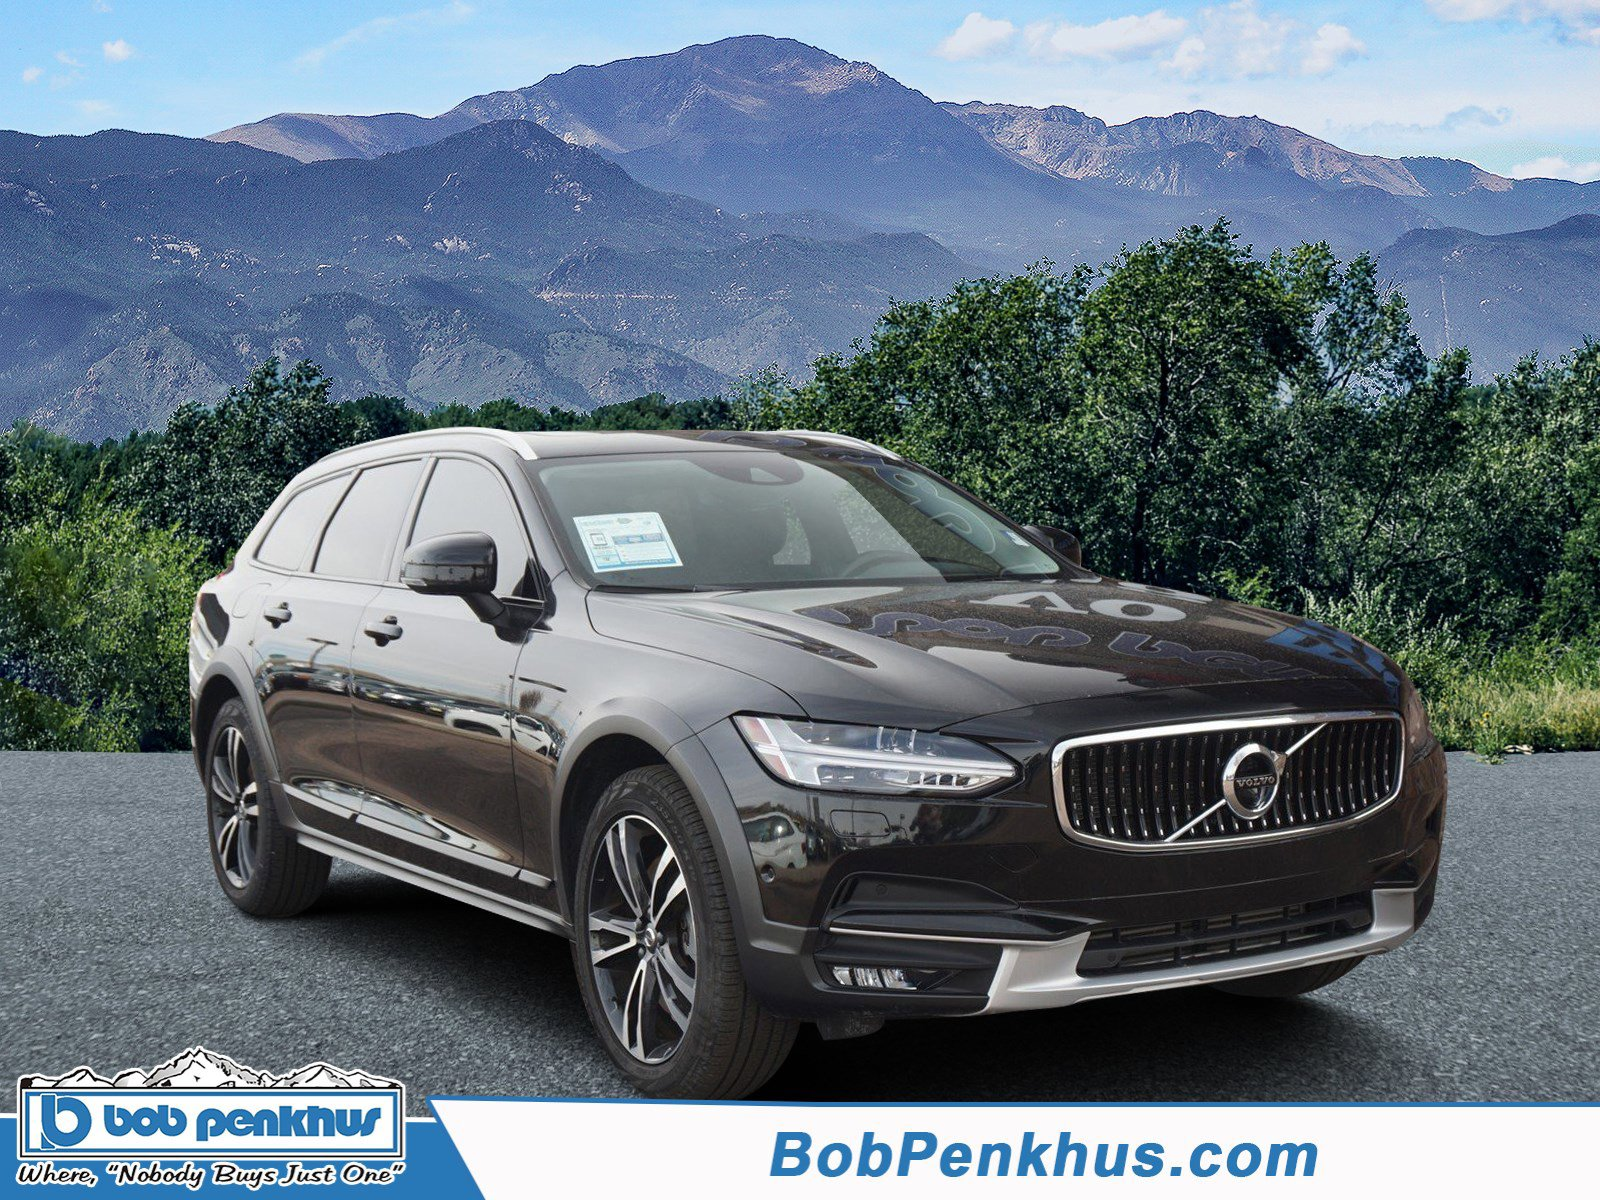 2018 Volvo V90 T5 Cross Country Momentum AWD image